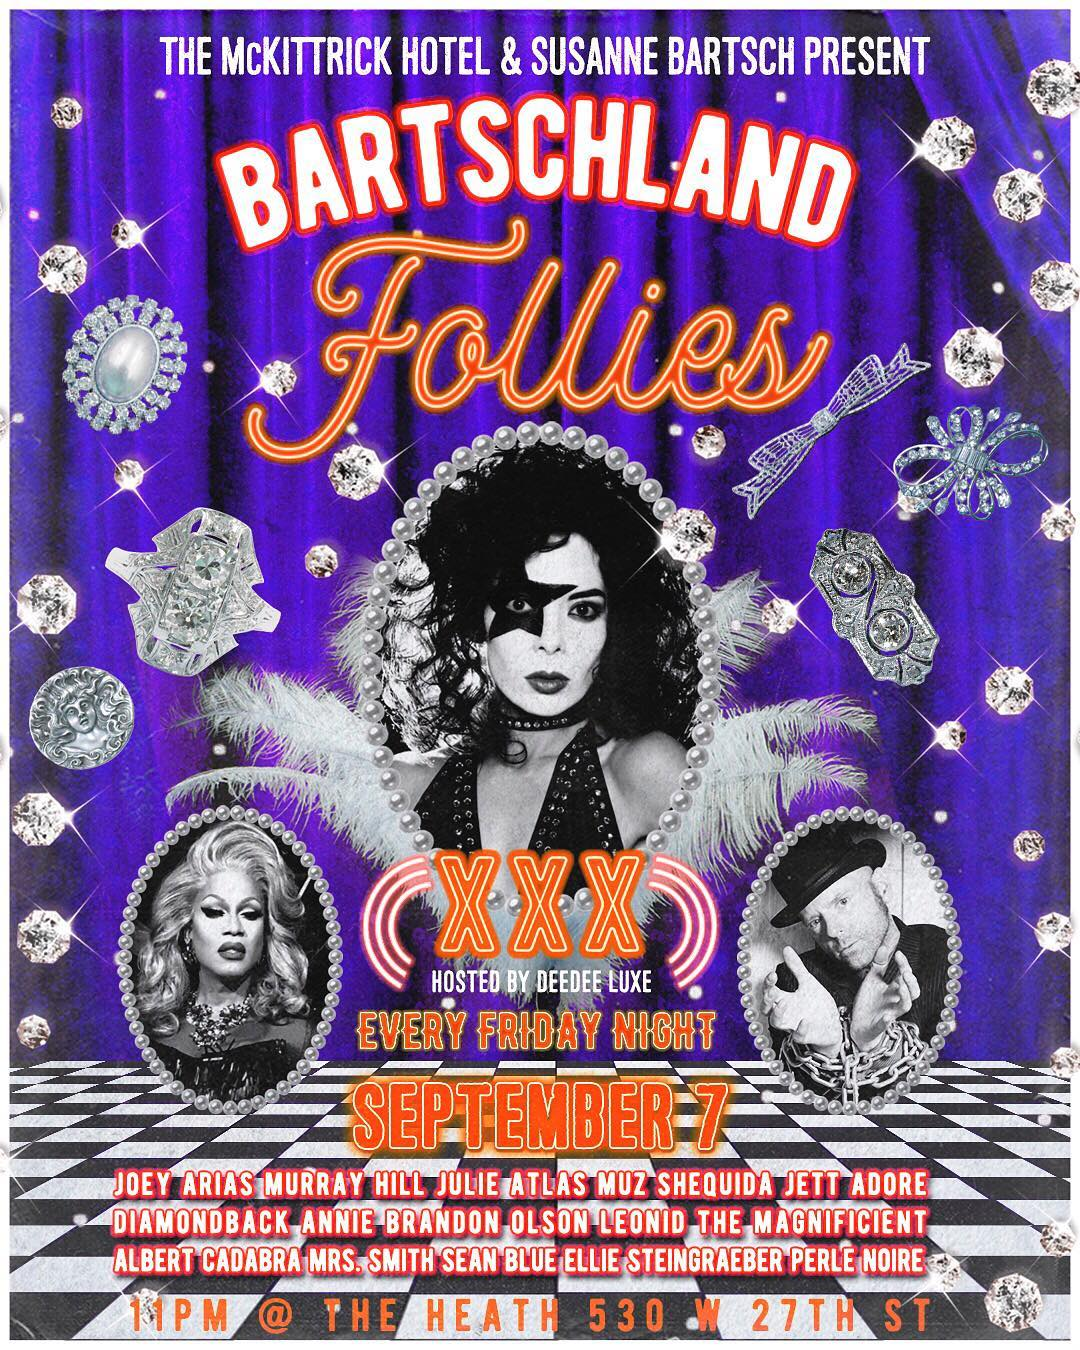 Bartschland Follies Sept 7 2018.jpg